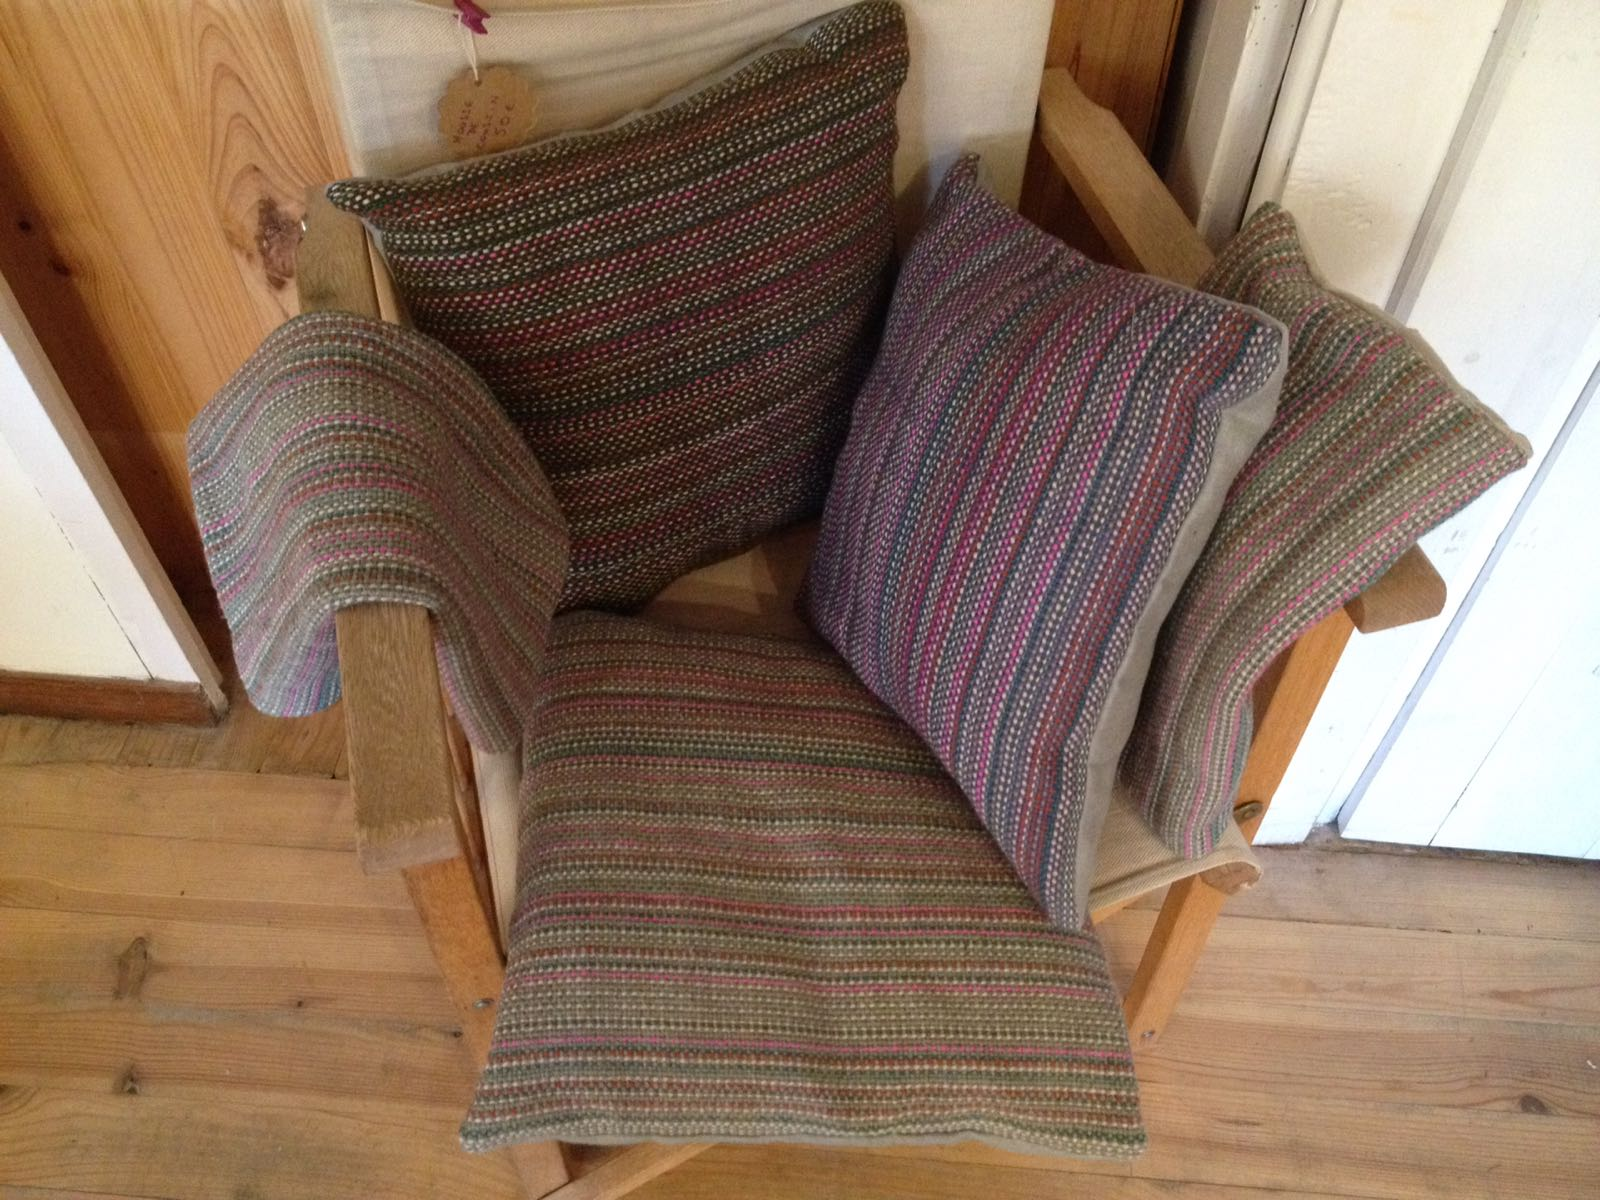 Handwoven cushion covers